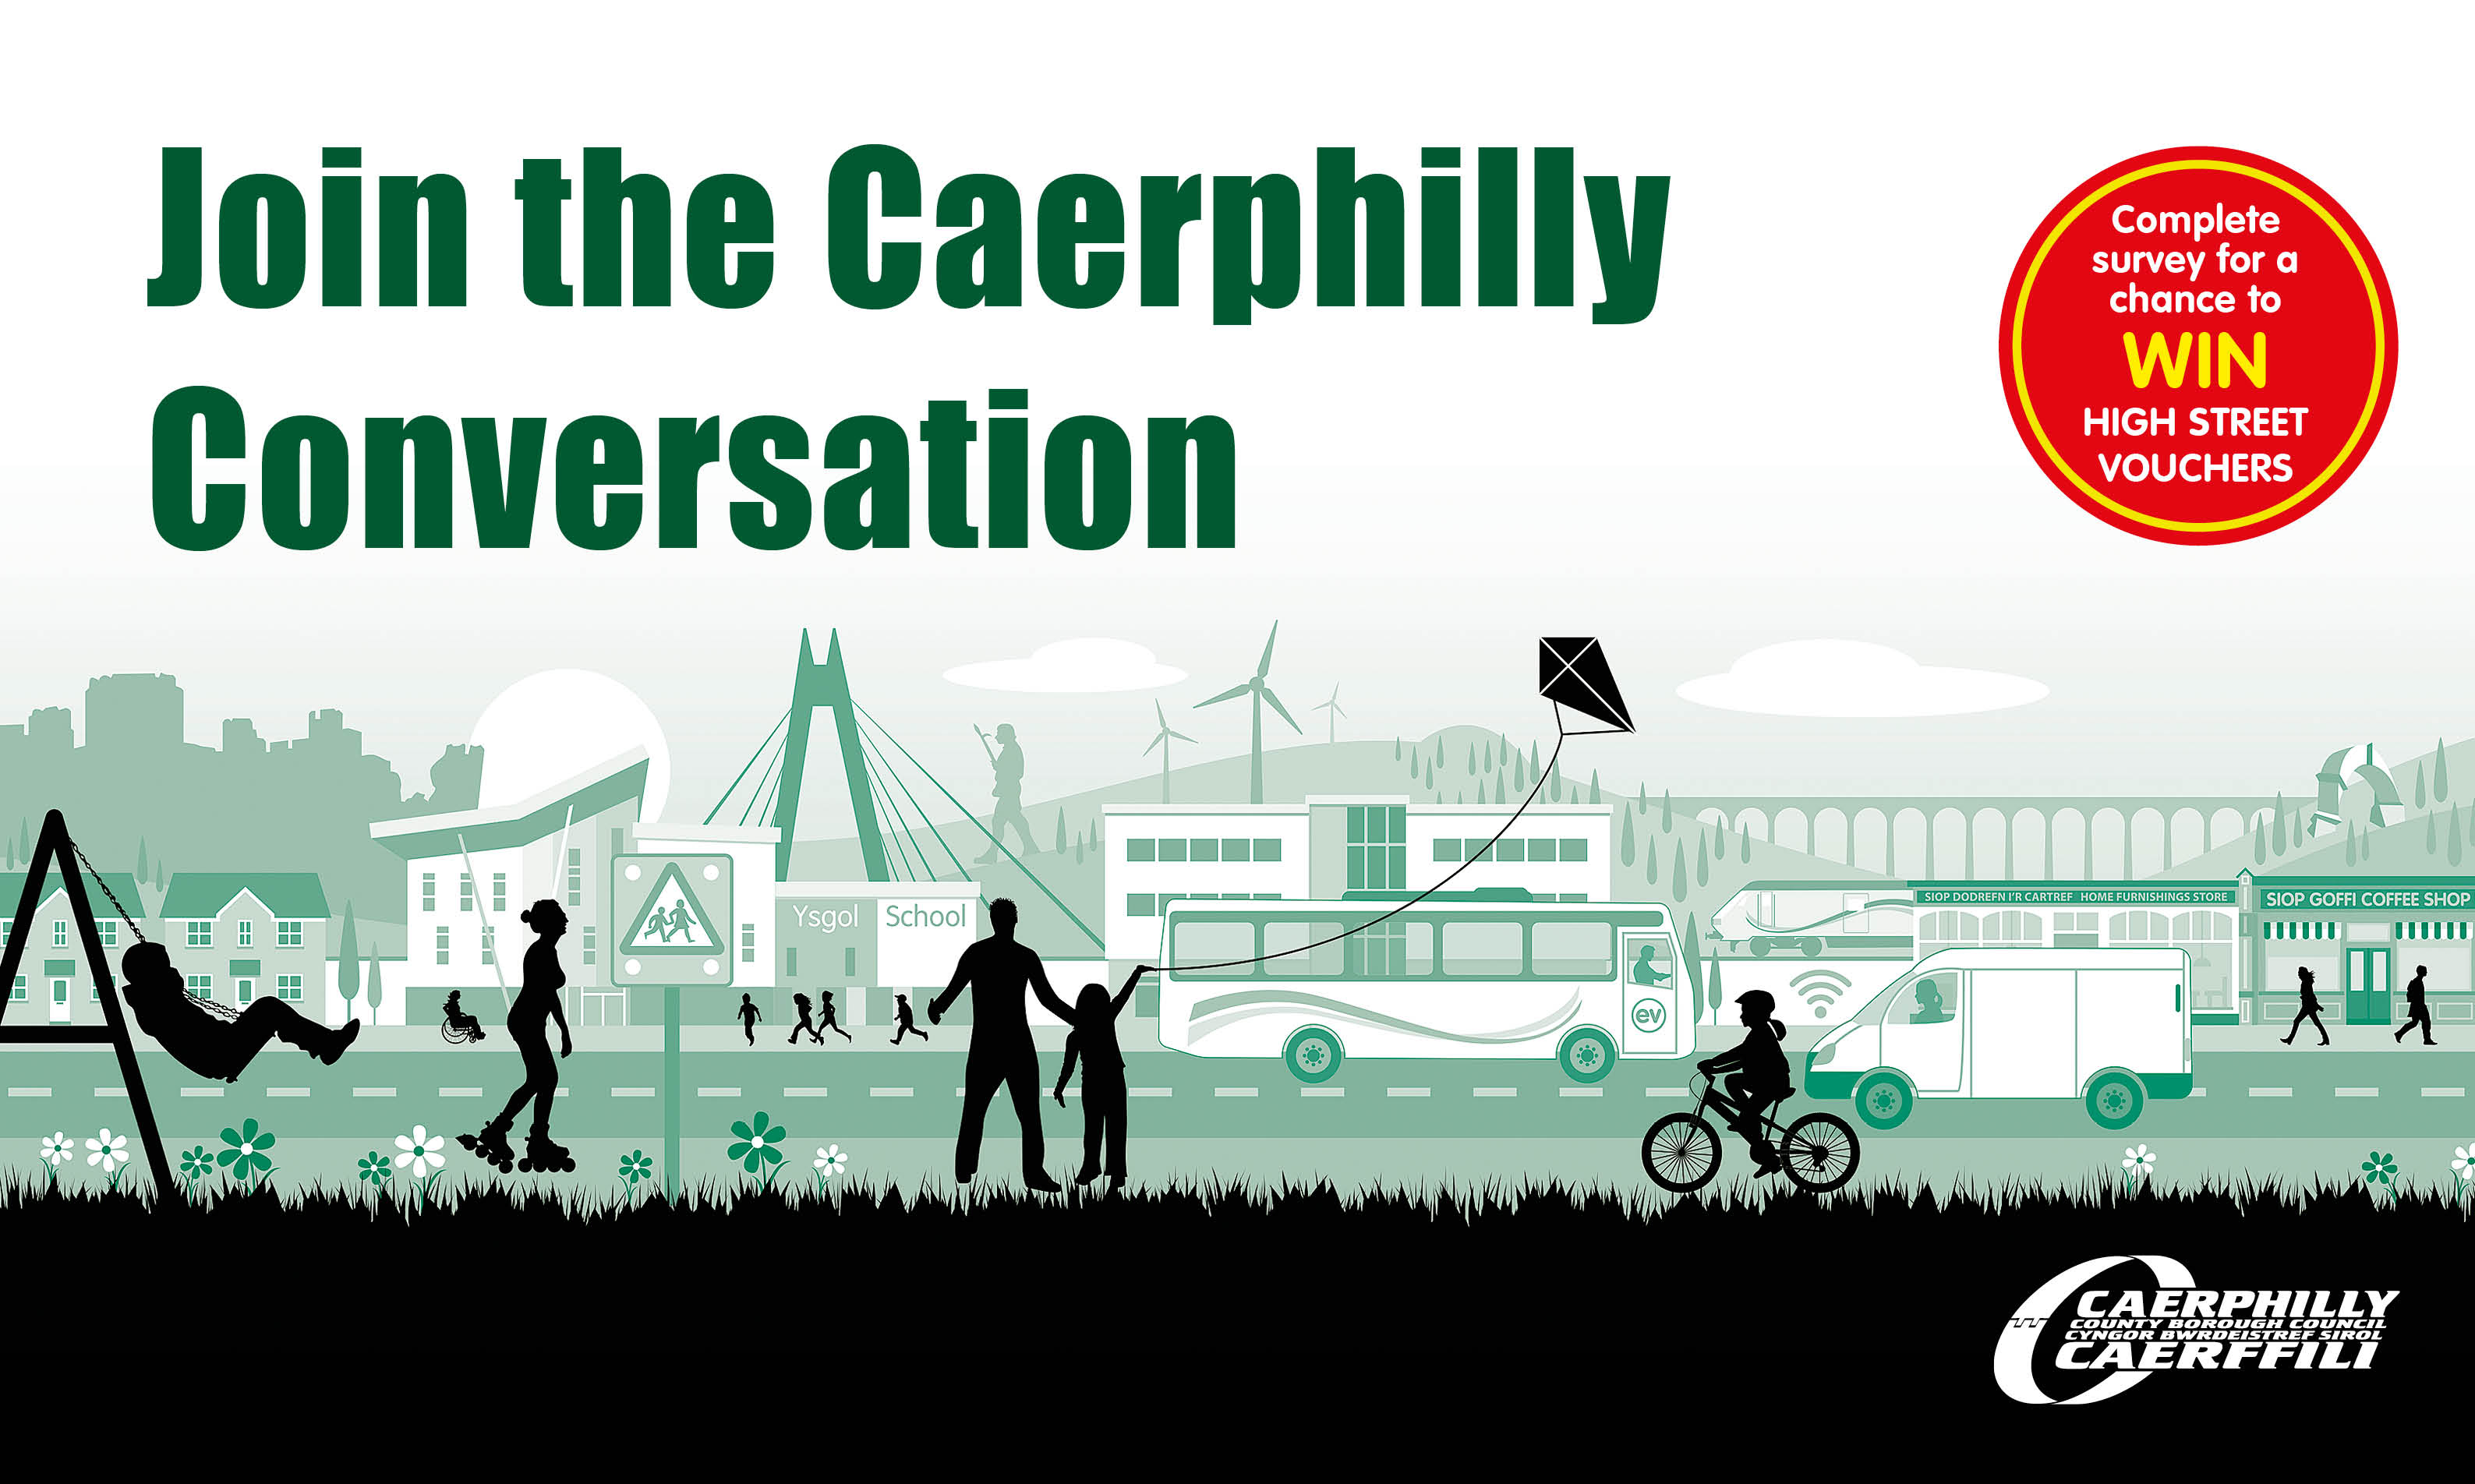 Join the Caerphilly Conversation